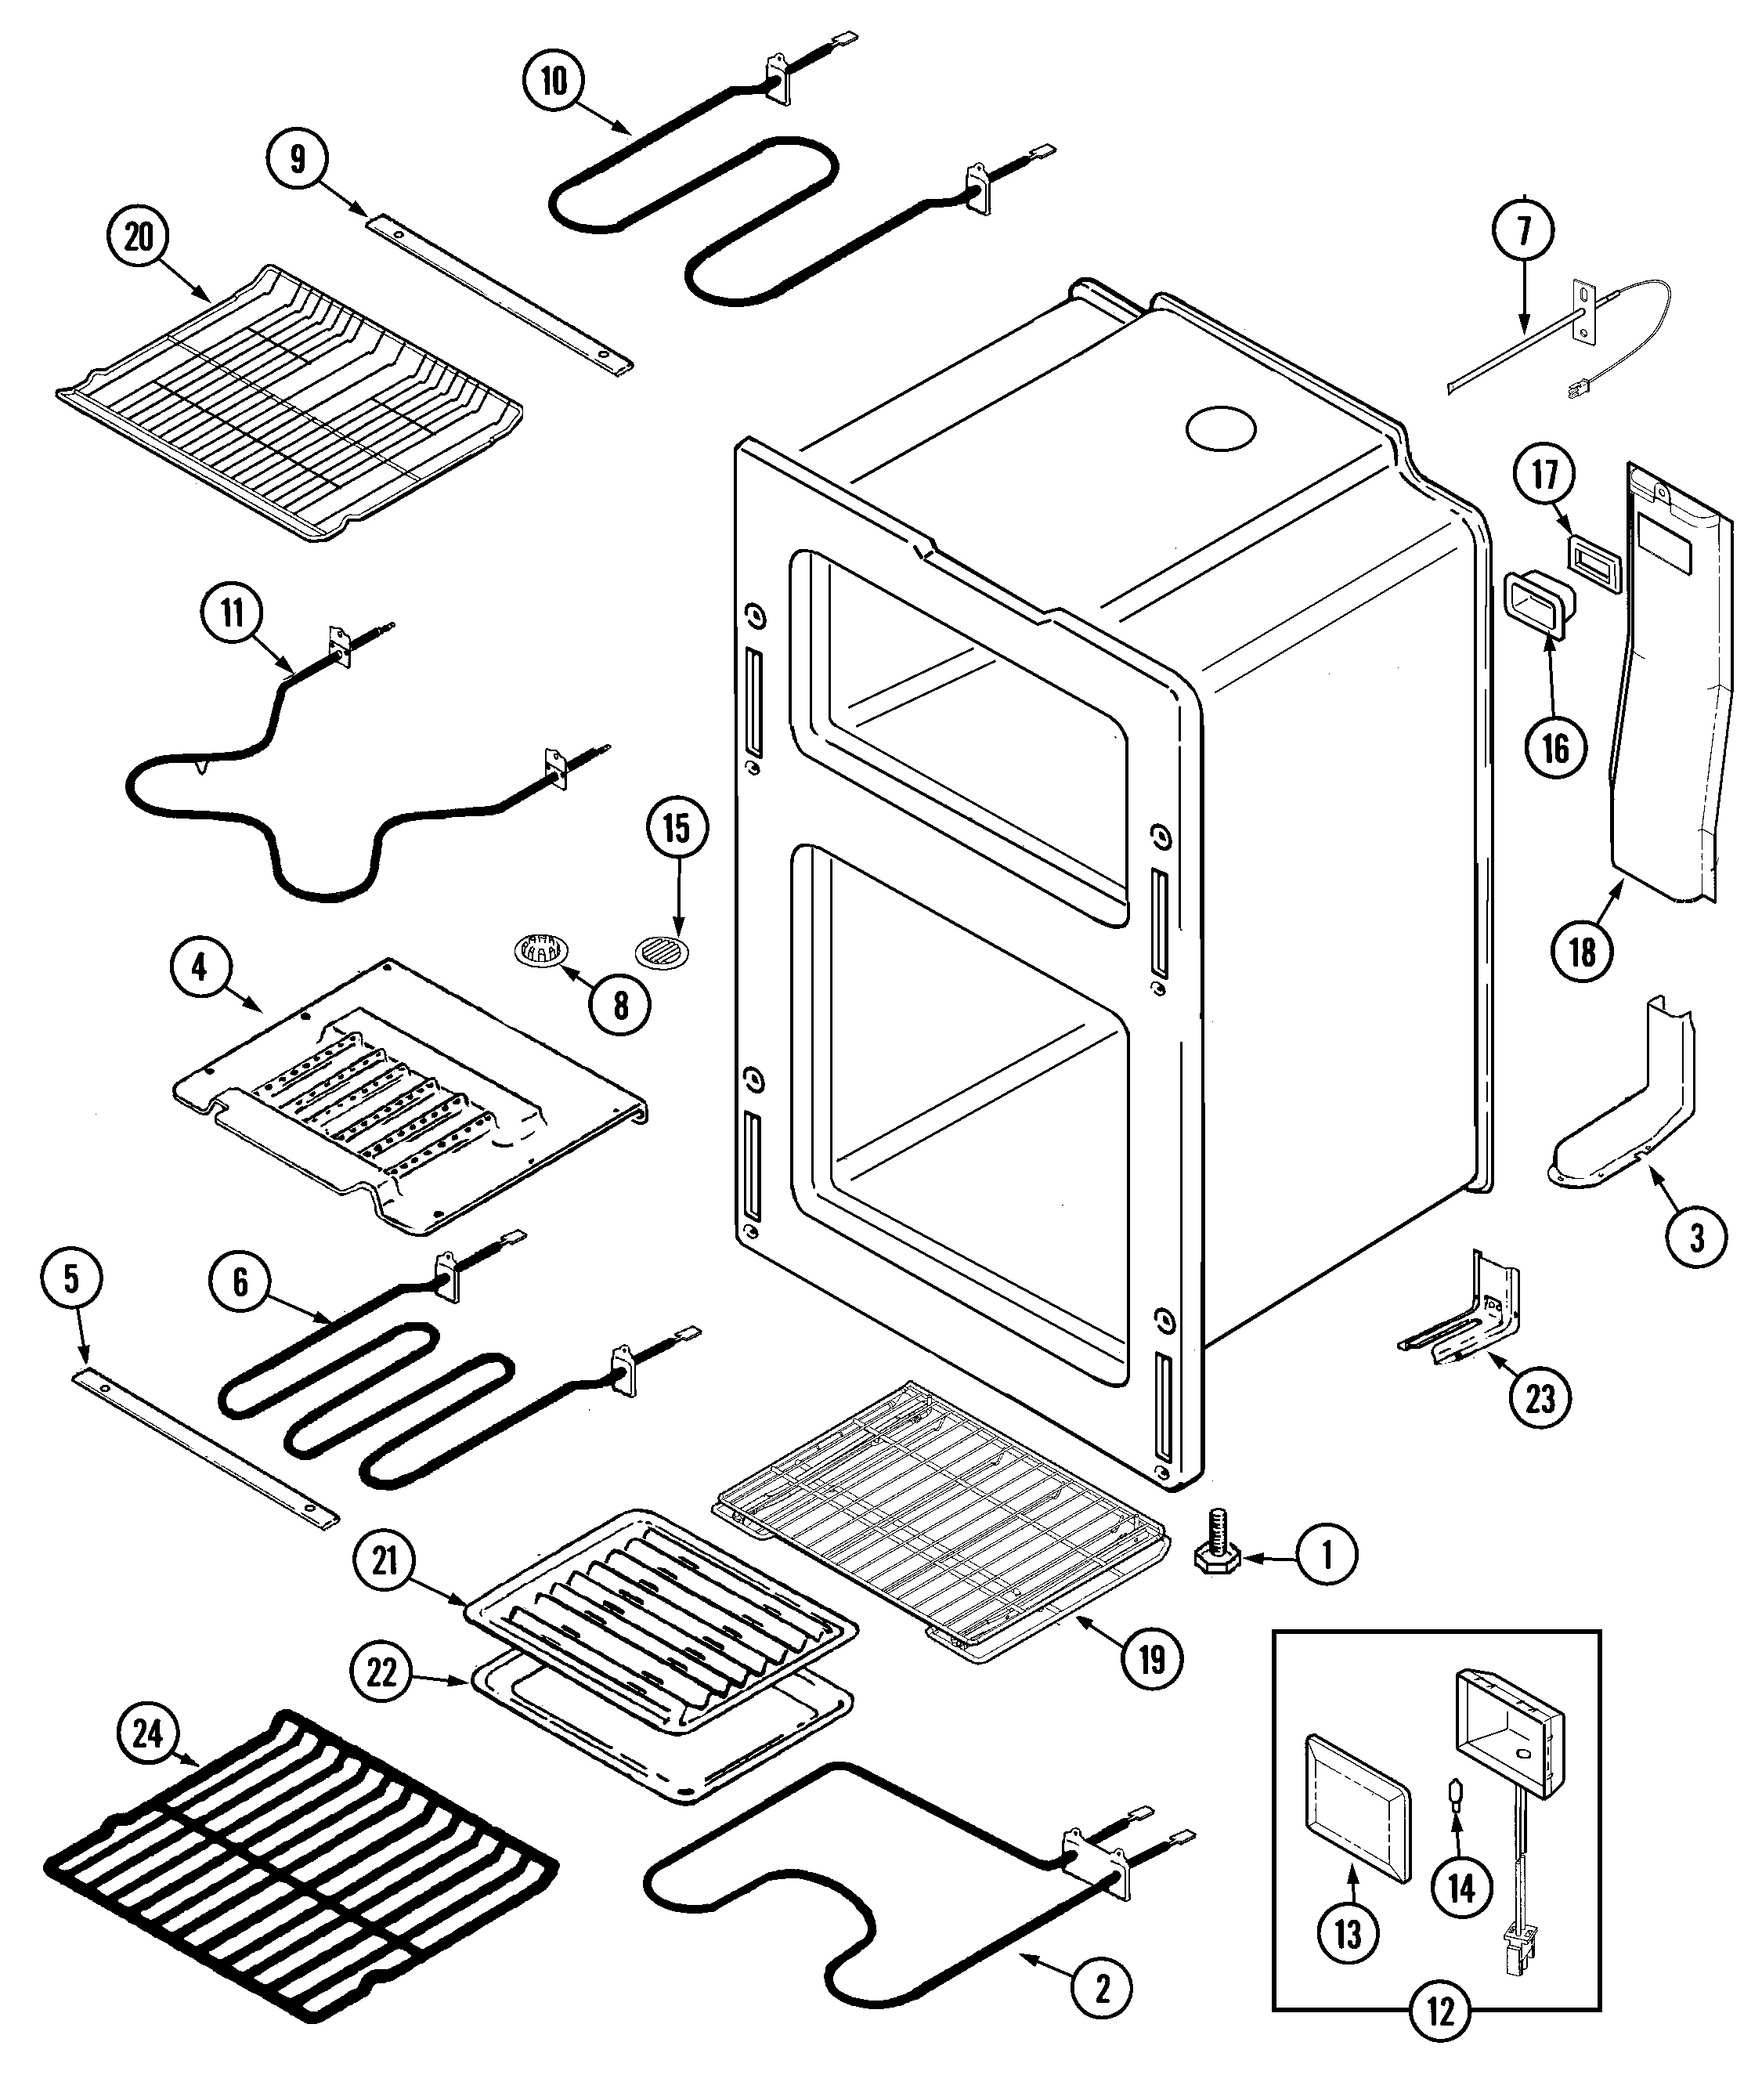 Maytag Mer6772bcw Range Timer Stove Clocks And Appliance Timers Computer Parts Diagram Oven